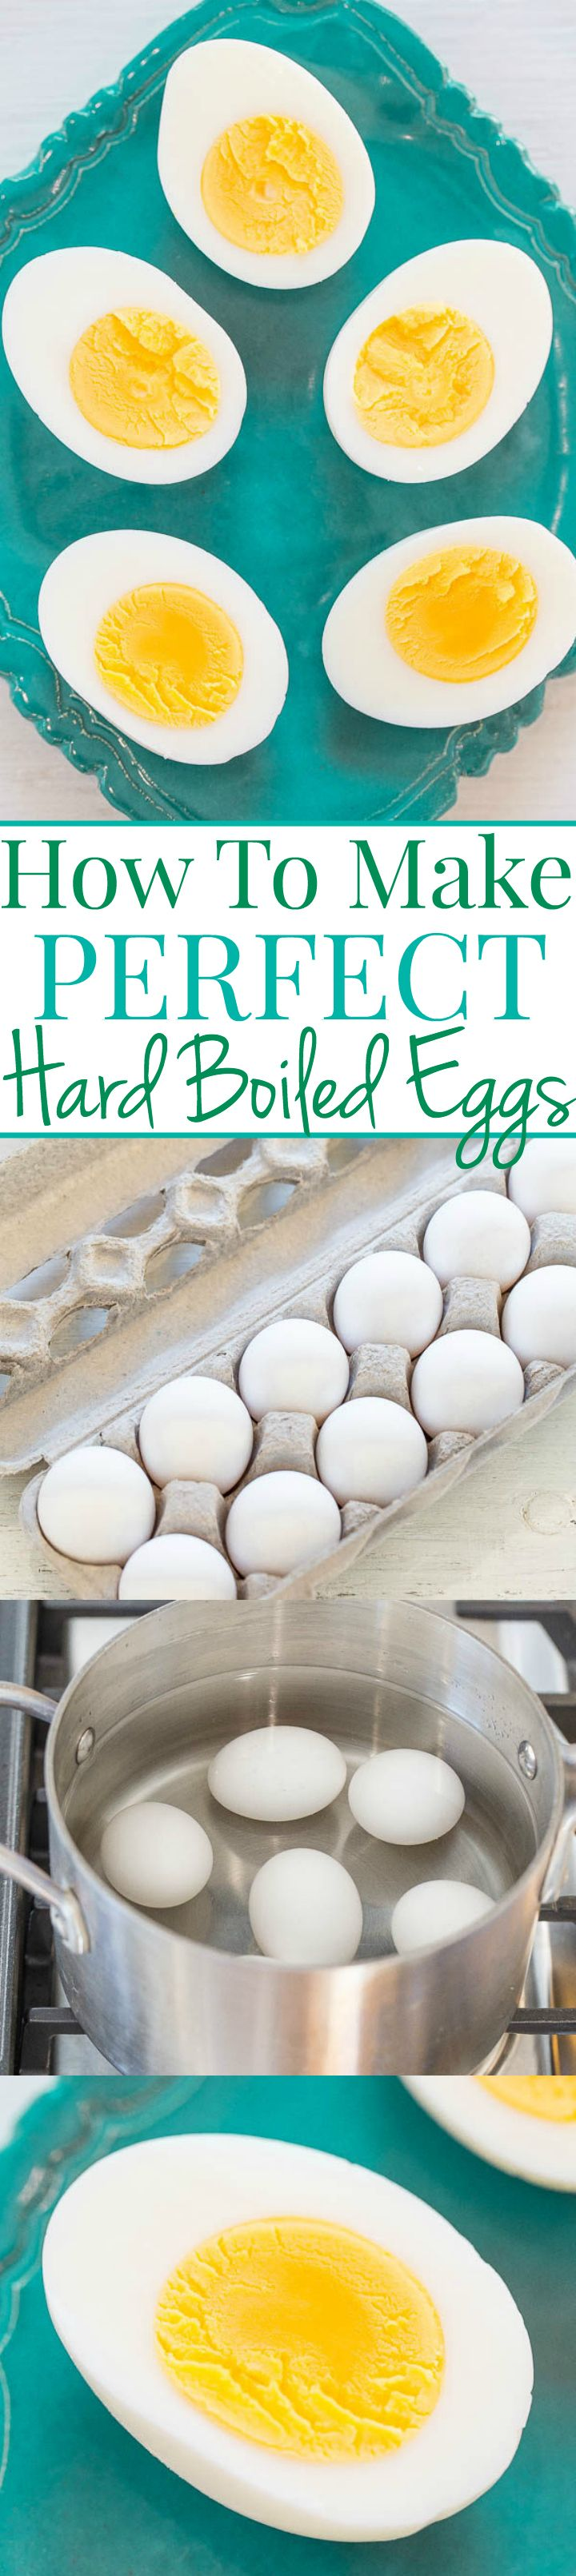 The hardest part of any recipe that involves hard boiled eggs is properly hard boiling them. Too little time in hot water and the yolks are runny, too long and the yolks turn gray-green from the sulfur. My tips for perfect hard boiled eggs are as follows: Use week old eggs. Older eggs have lower …